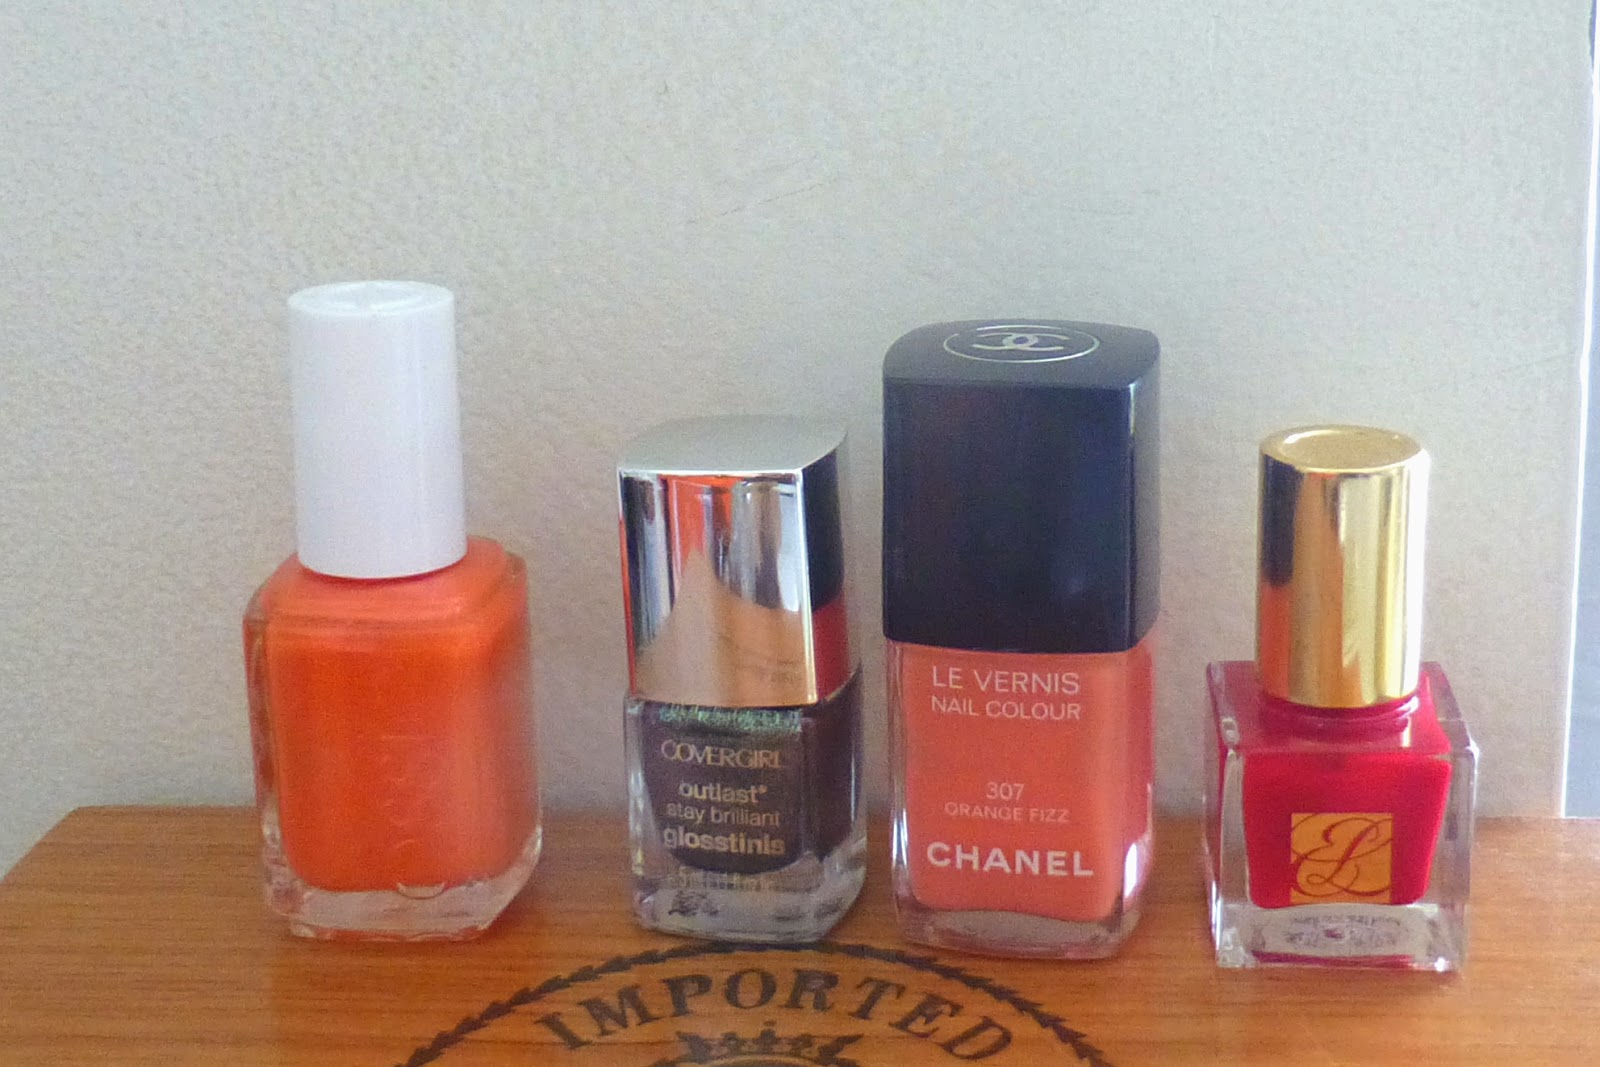 channel orange fizz, essie polish, estee lauder pure color